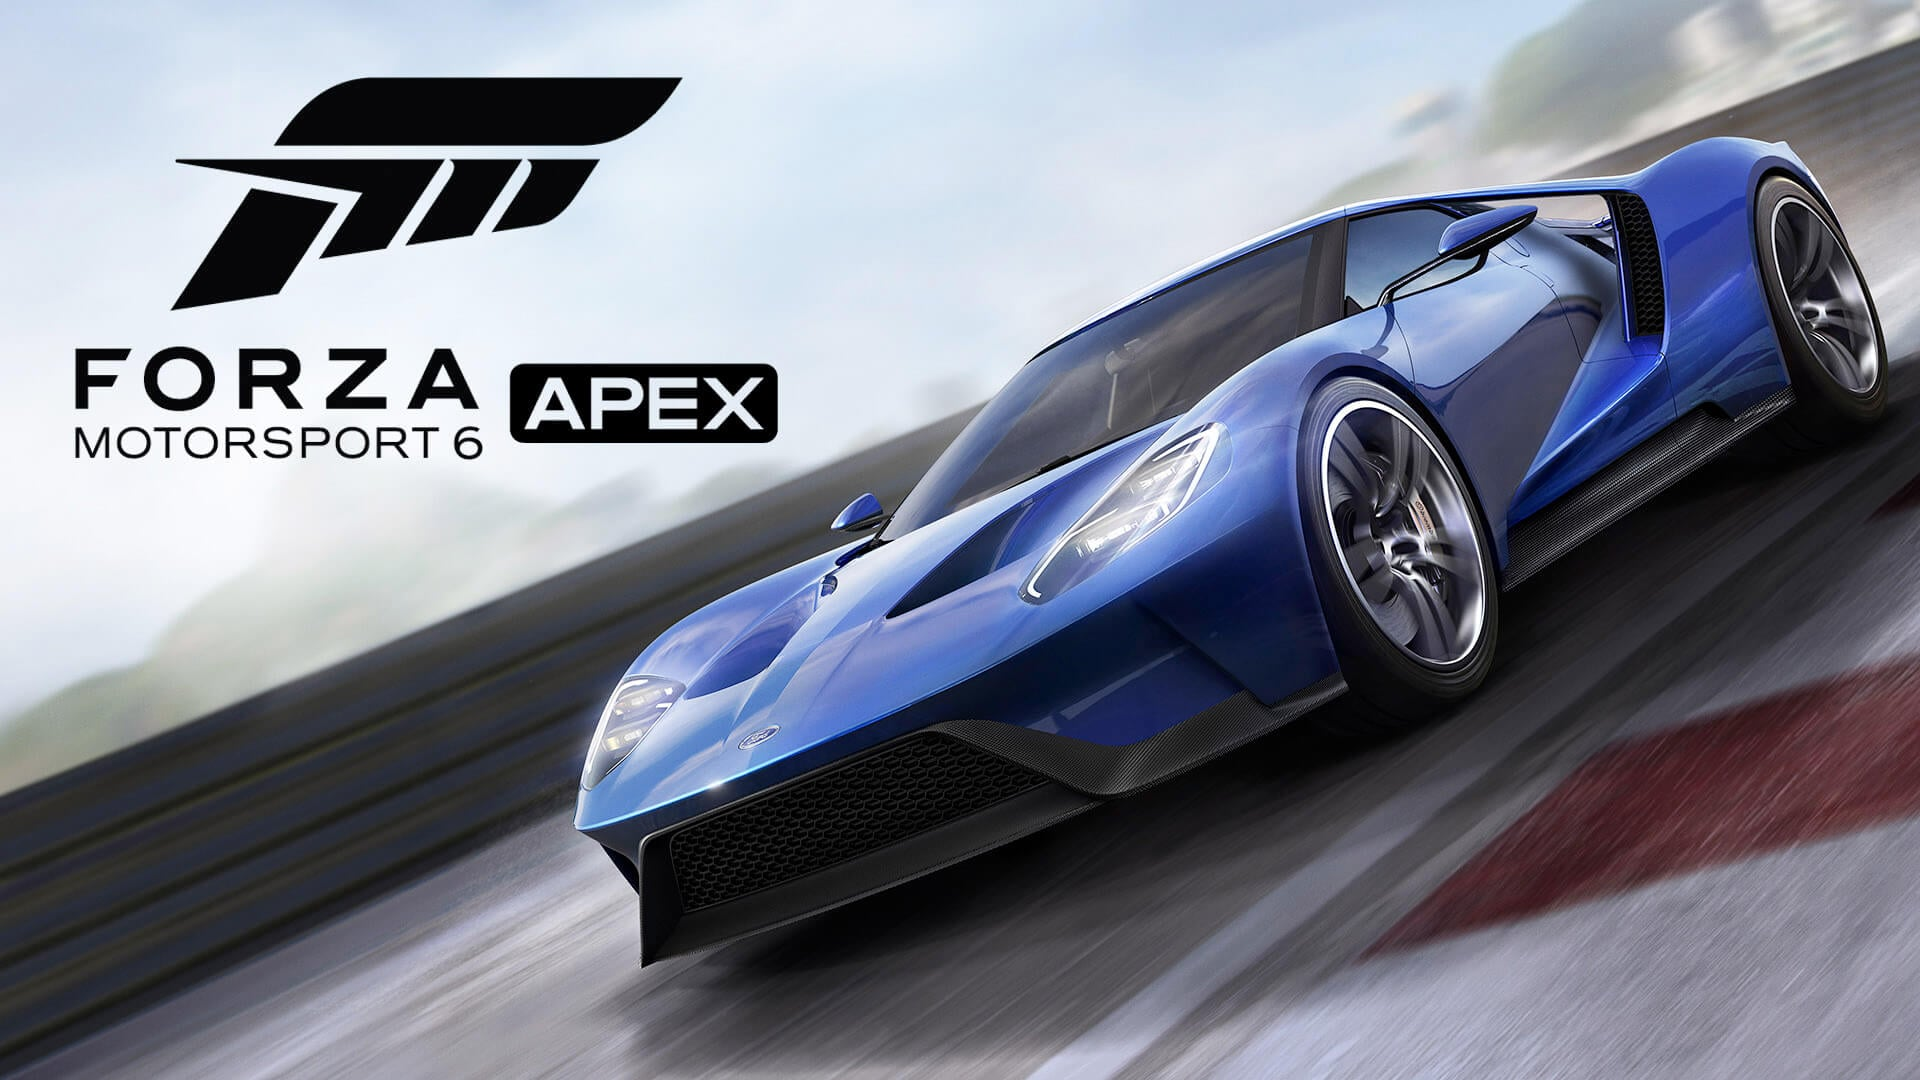 Turn 10 has just announced the forza motorsport 6 apex premium edition it includes the entire free base game as well as three additional dlc packs